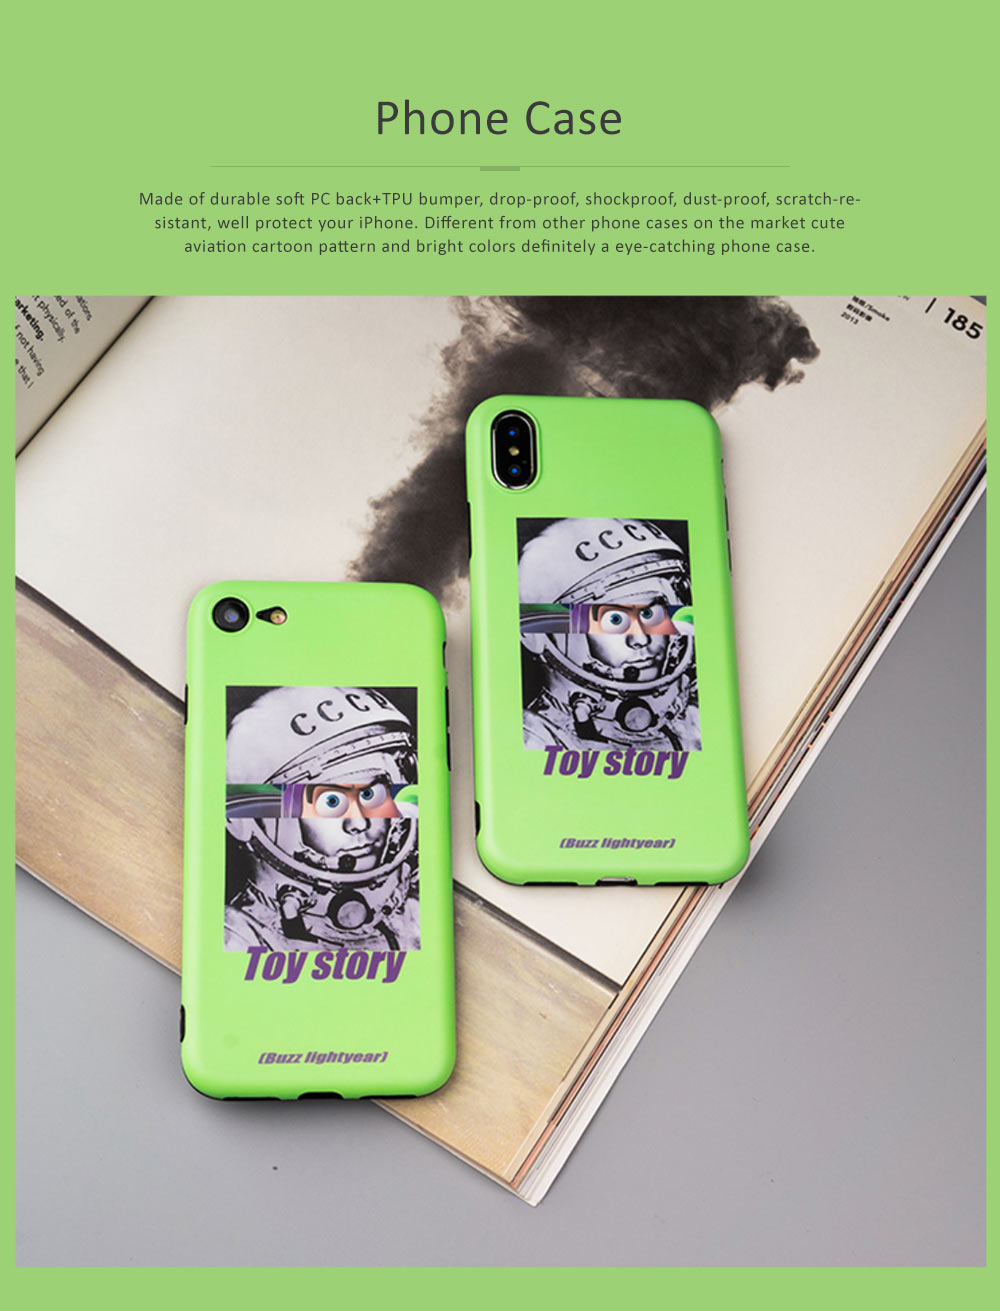 Cute Phone Case Cartoon Soft TPU Back Case Cover Durable Matte Phone Protector for iPhone 6, 6s, 6p, 6sp, 7, 7p, 8, 8p, x 0